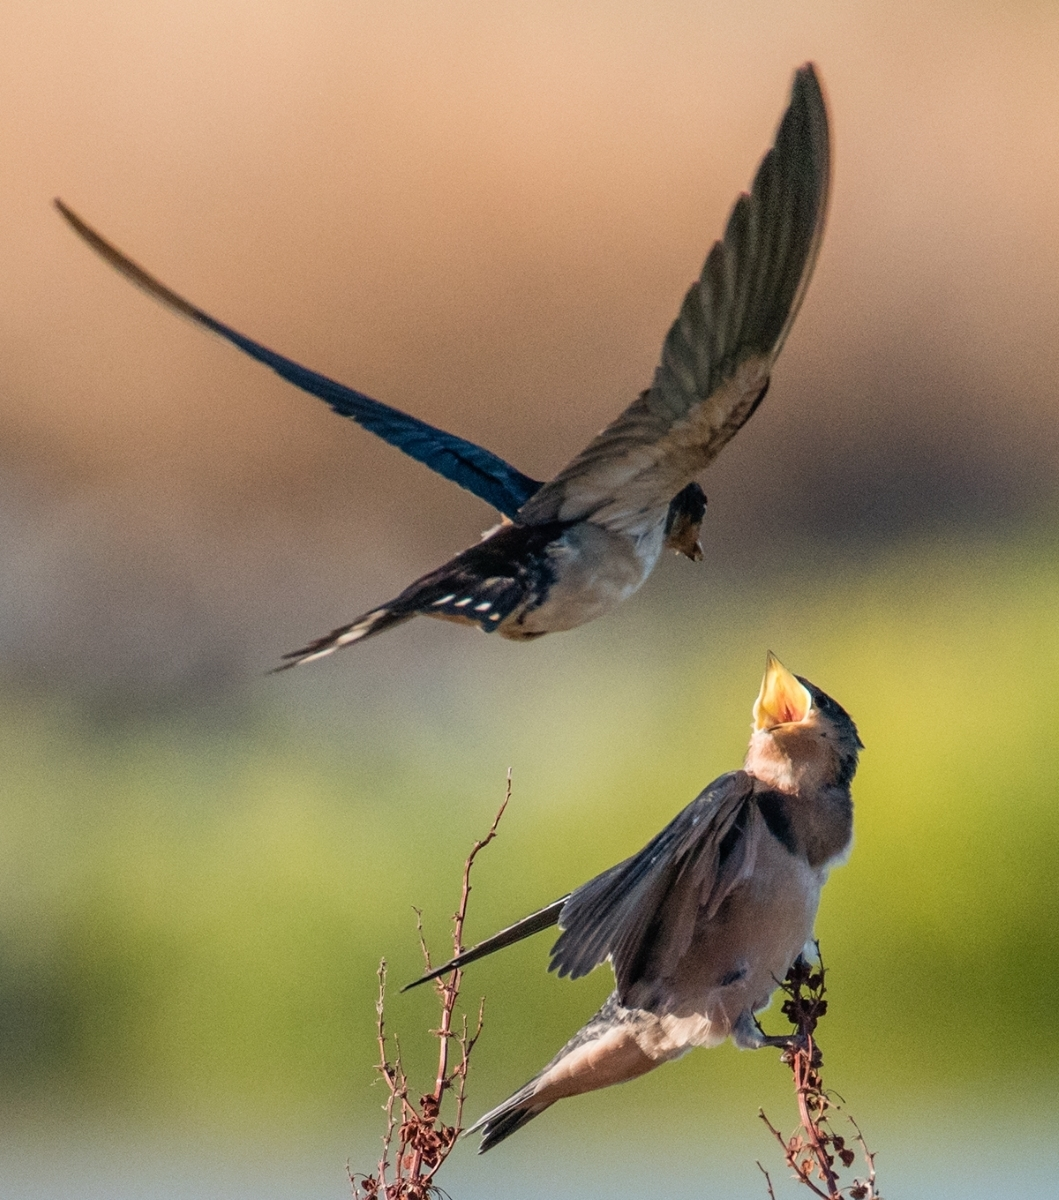 Barn-swallow-Hirundo-rustica-chick-being-fed-an-insect-2-12324507-Parent-finds-chick-NM-Place-by-Susie-Kelly-MR